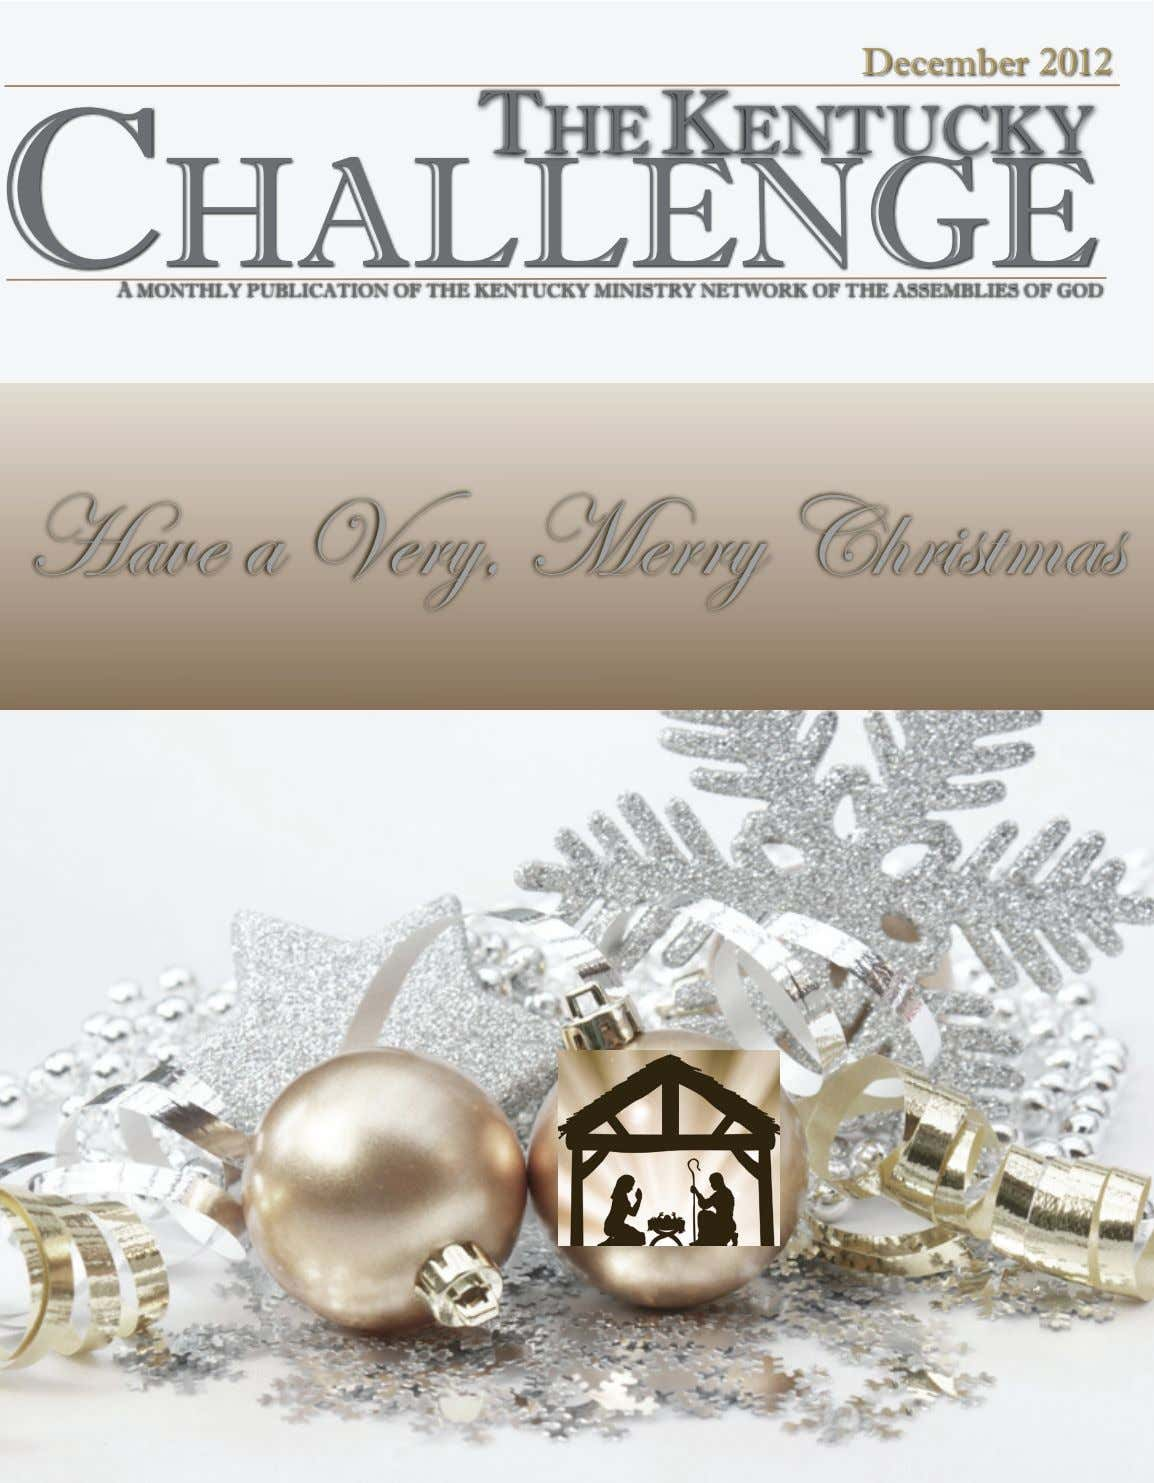 December 2012 T HE KENTUCKY C HALLENGE A MONTHLY PUBLICATION OF THE KENTUCKY MINISTRY NETWORK OF